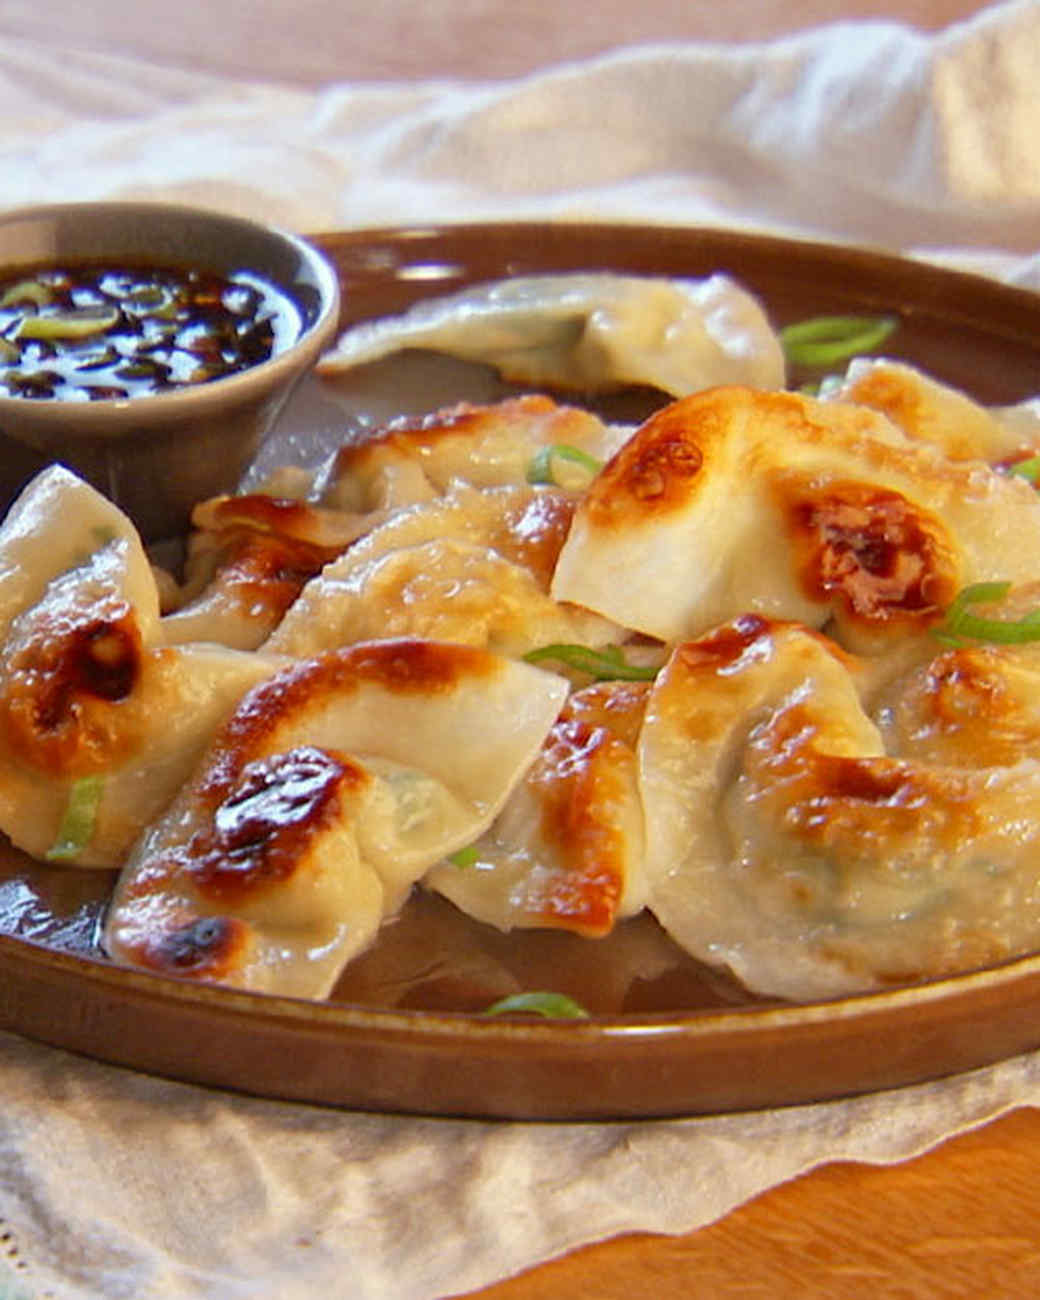 mh_1047_pot_sticker_dumplings.jpg